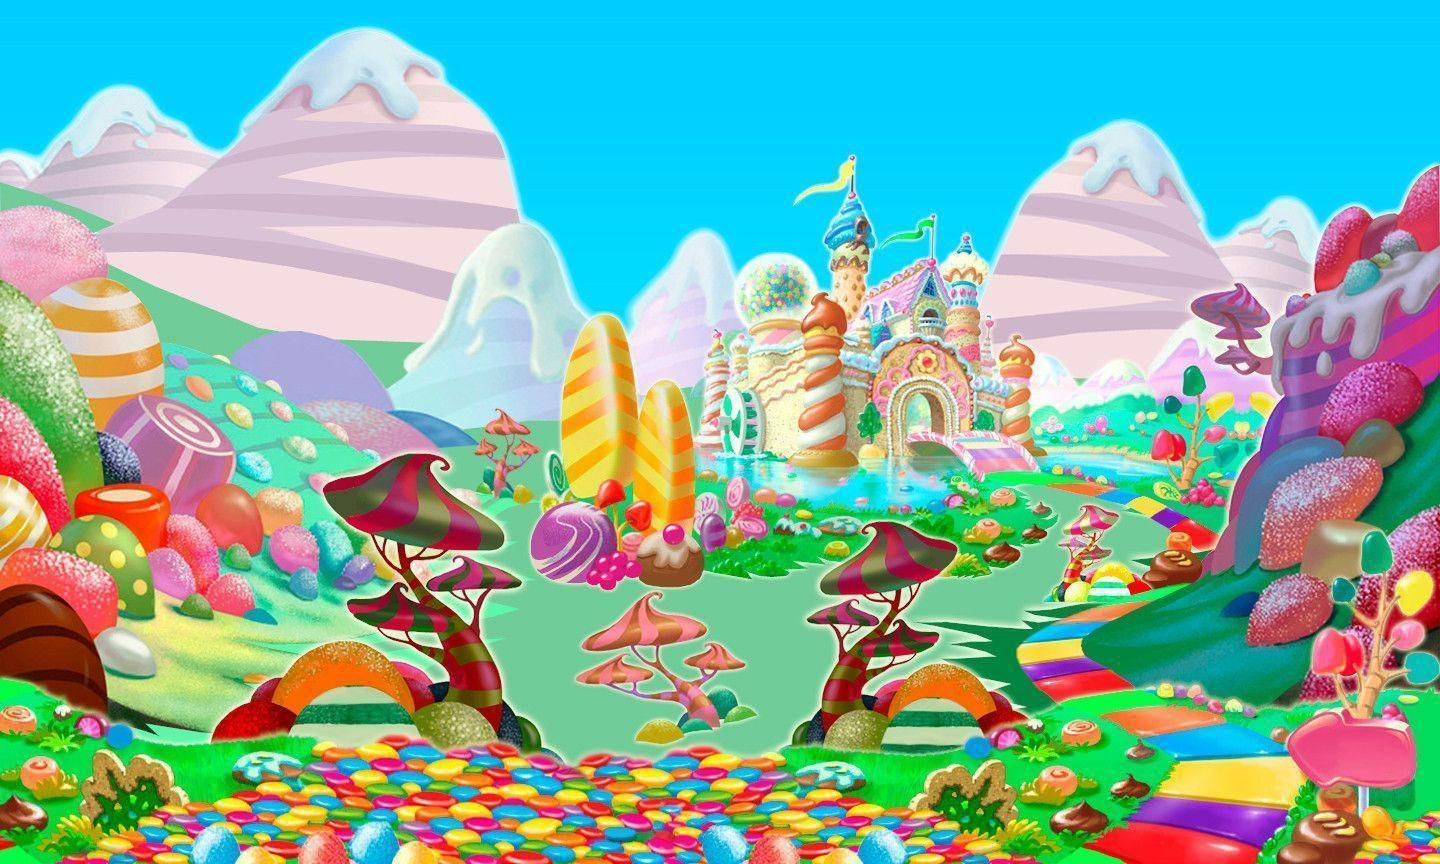 Candyland Backgrounds Wallpaper Cave HD Wallpapers Download Free Images Wallpaper [1000image.com]